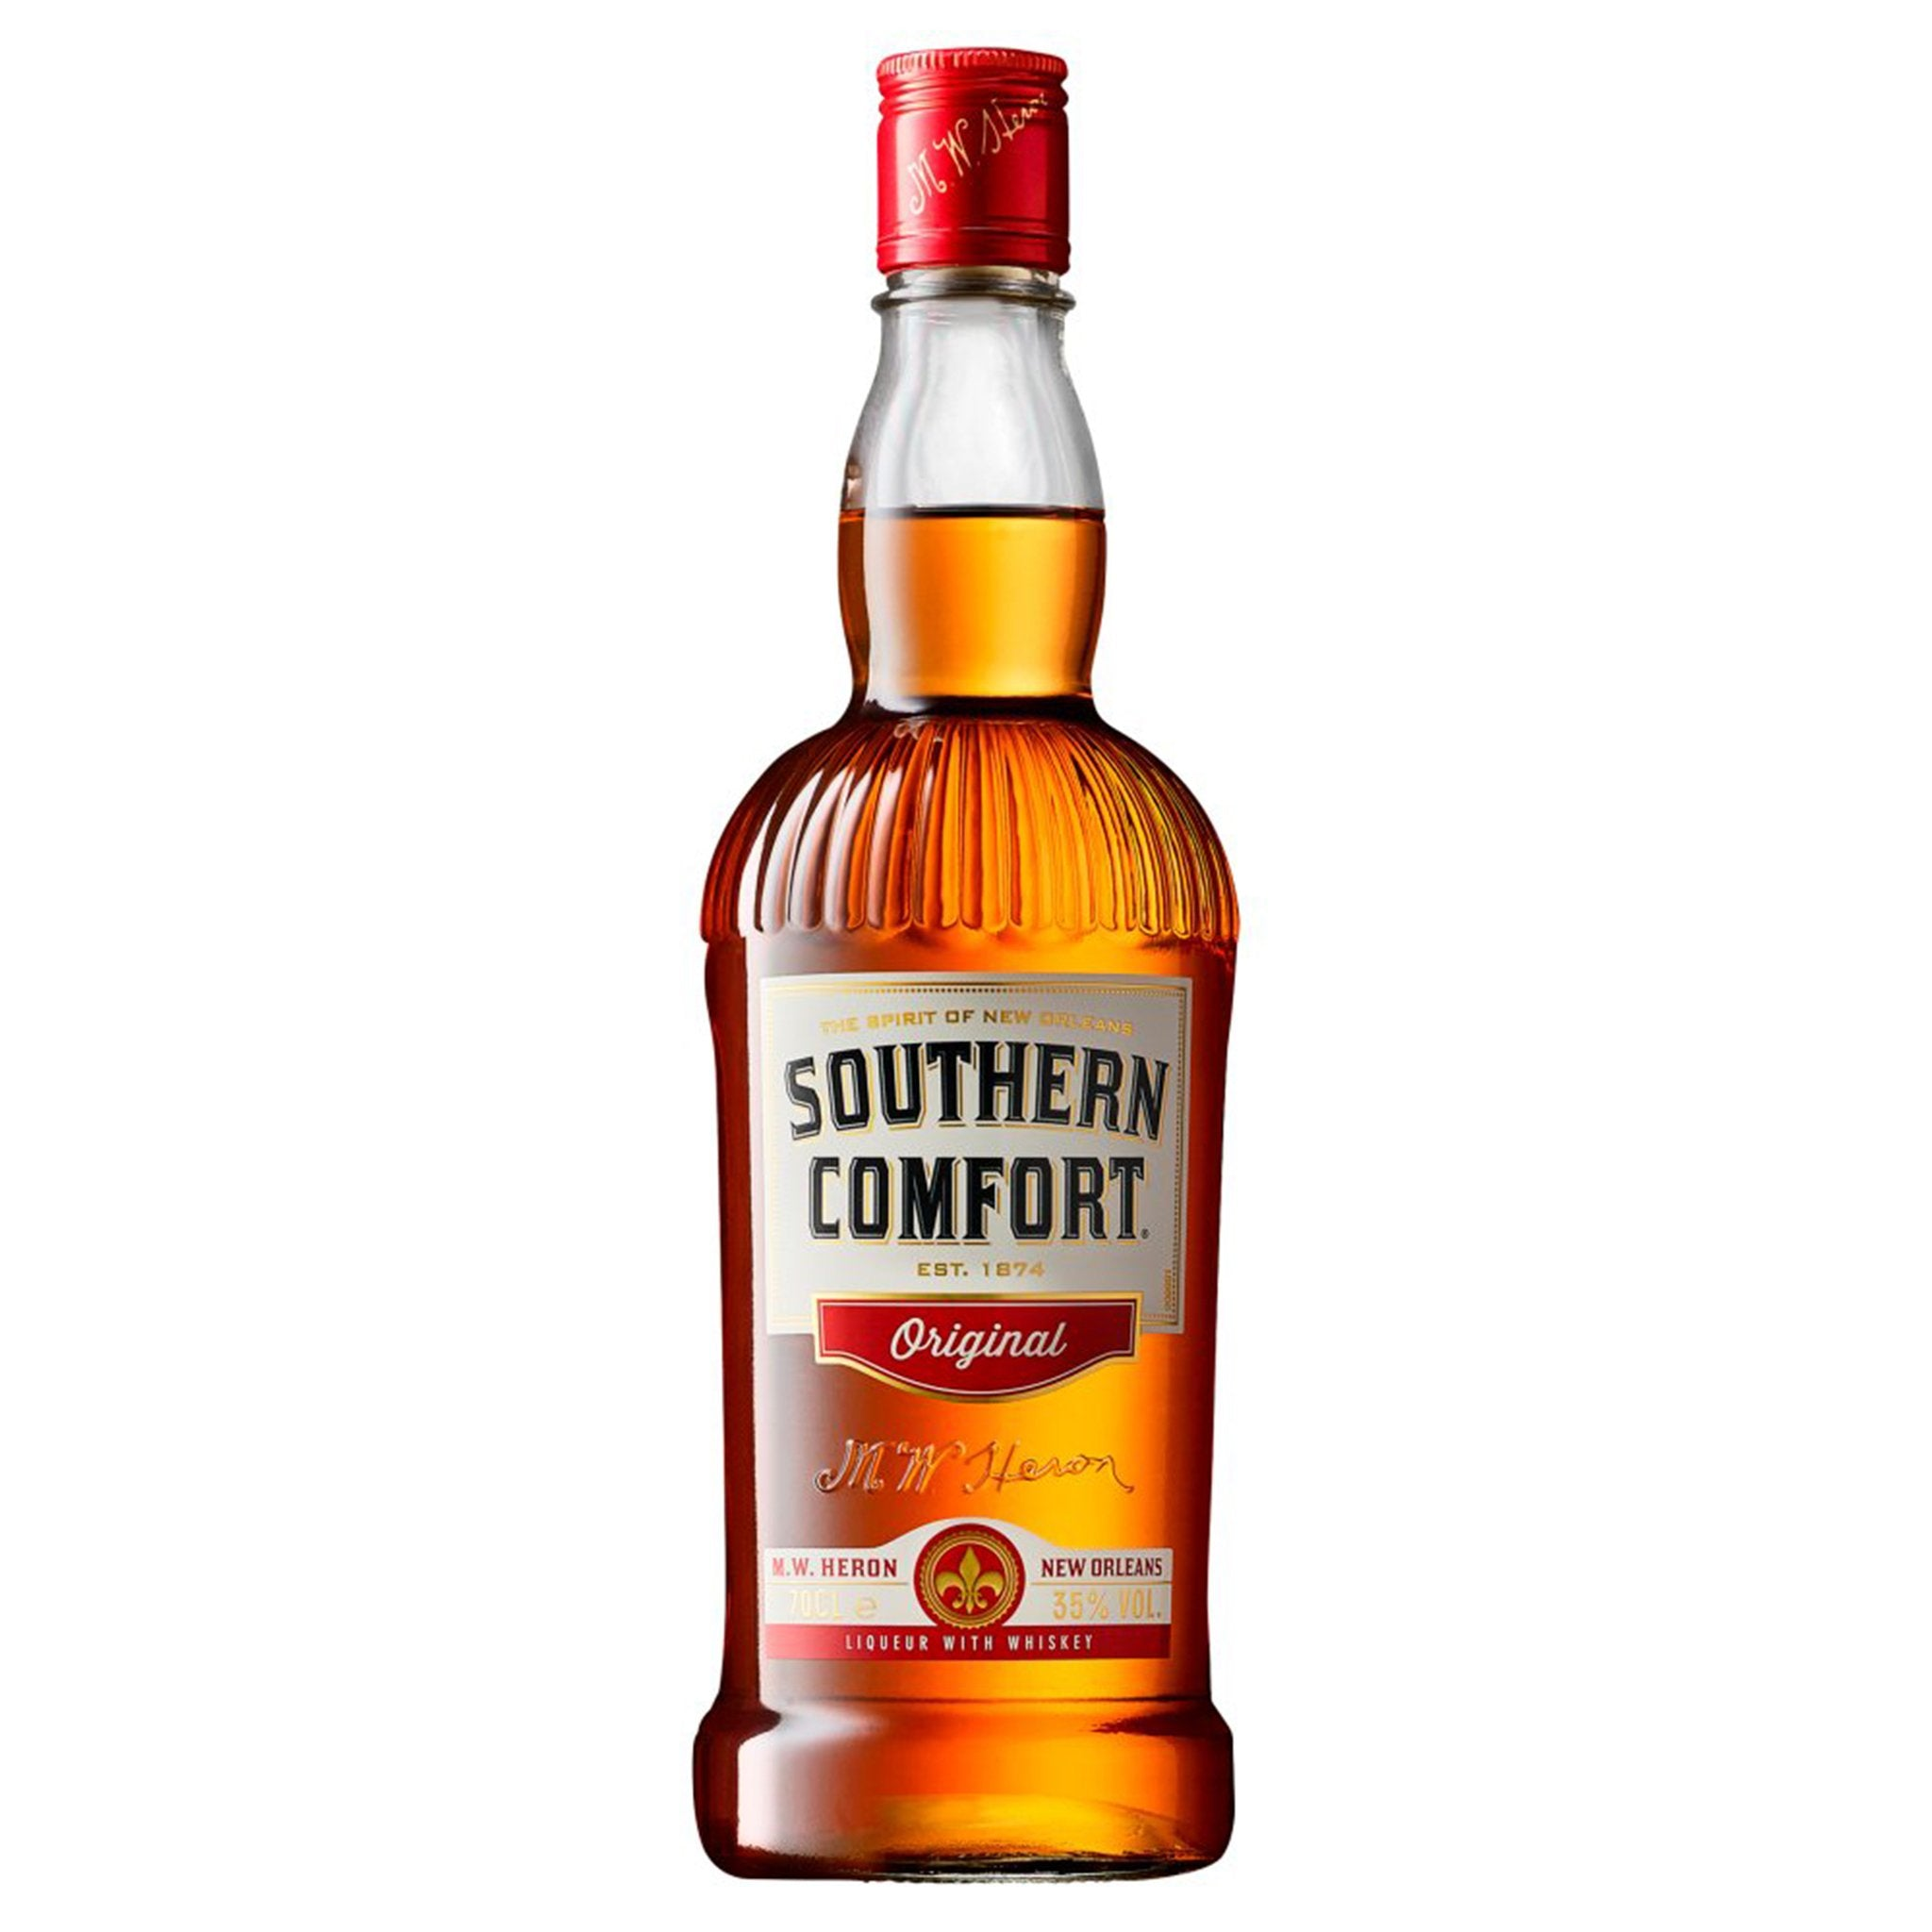 Southern Comfort Original Liqueur with Whiskey 70cl, Whisky - Image 0